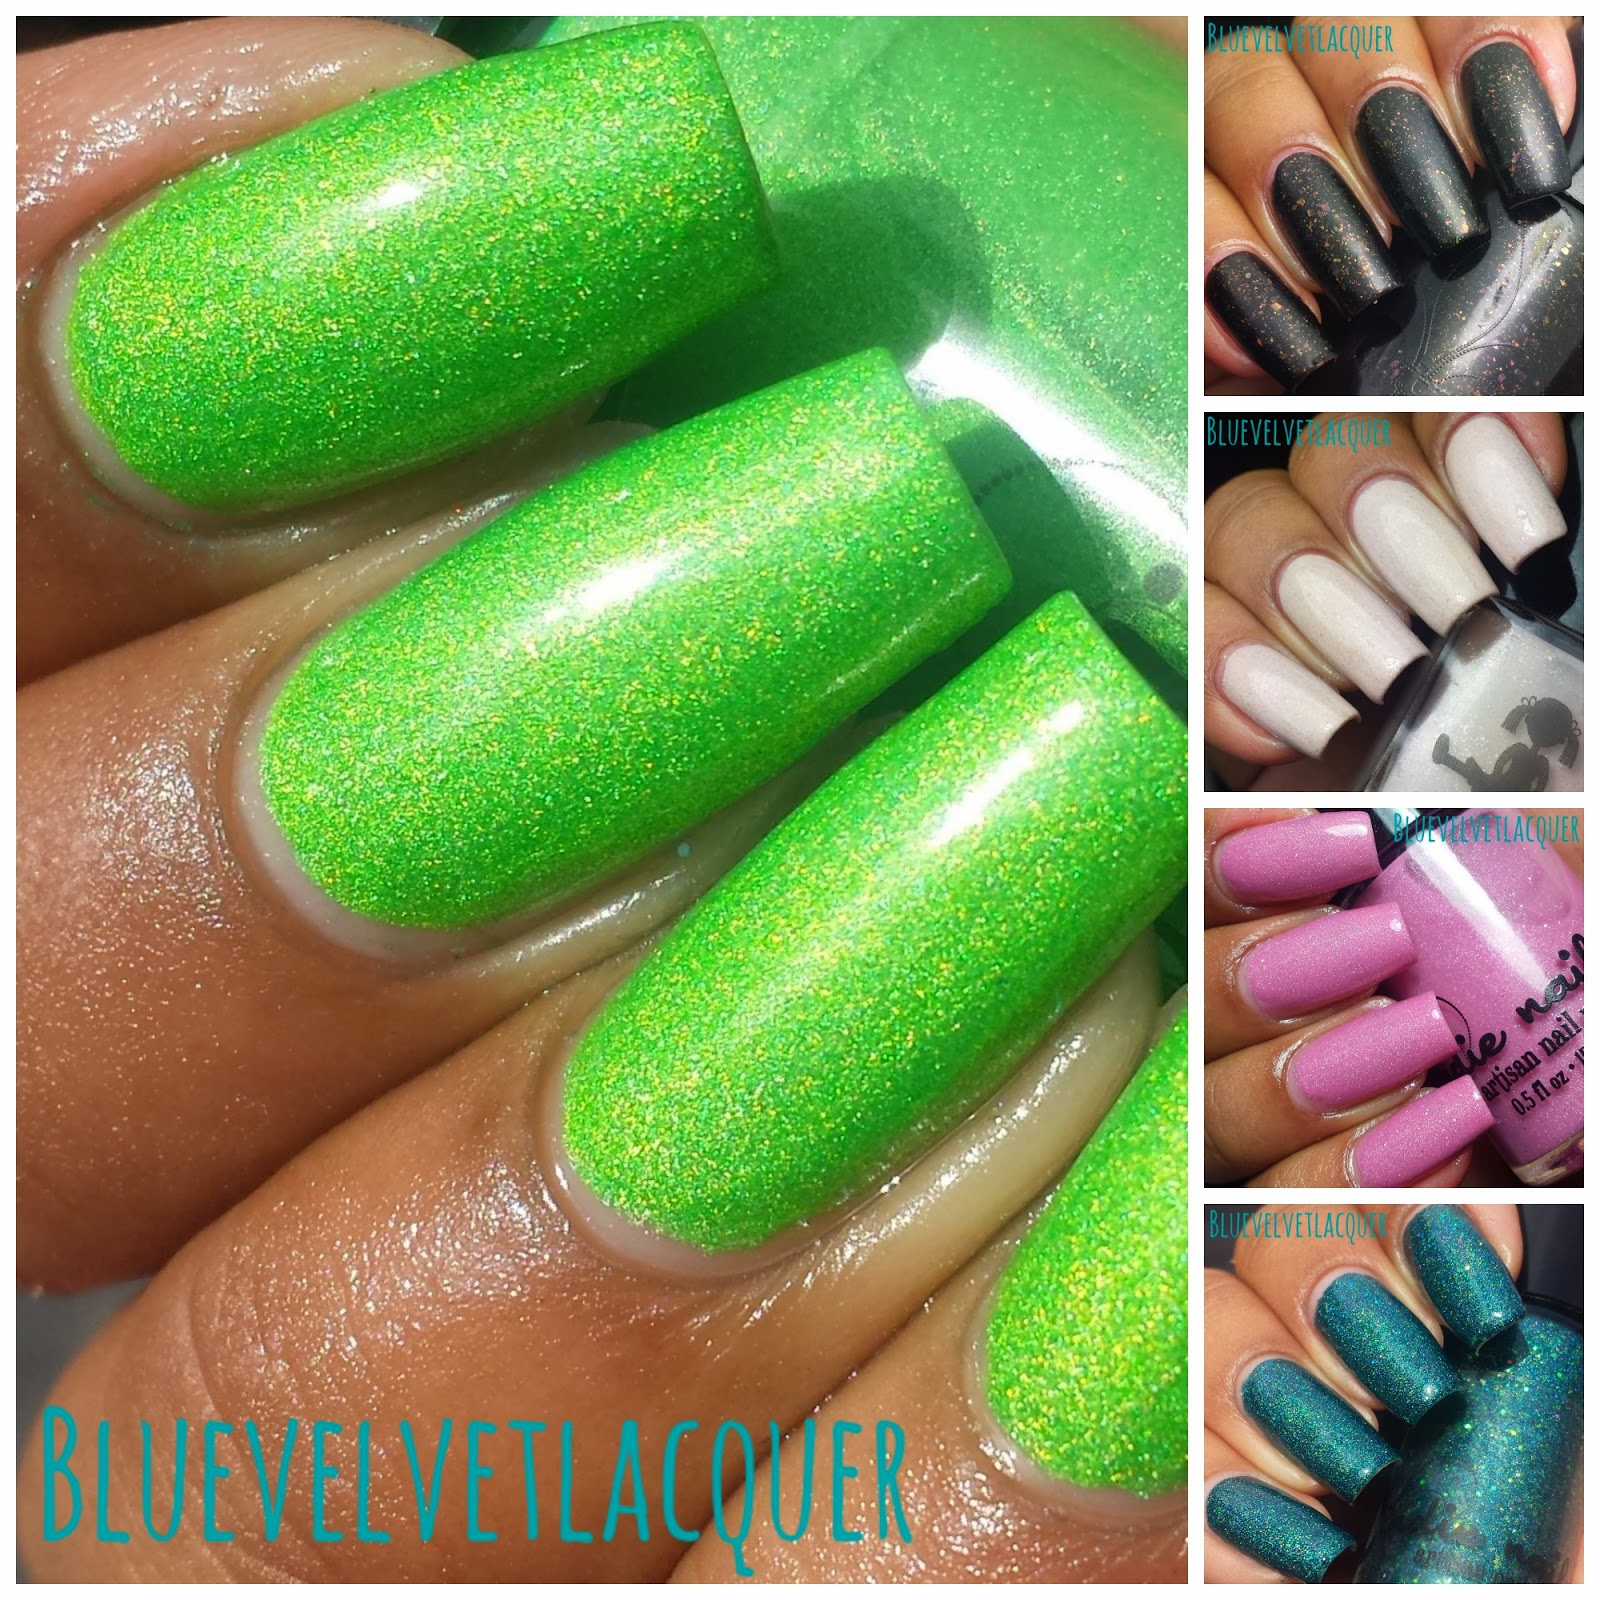 Blue Velvet Lacquer: Jindie Nails: Swatches & Review